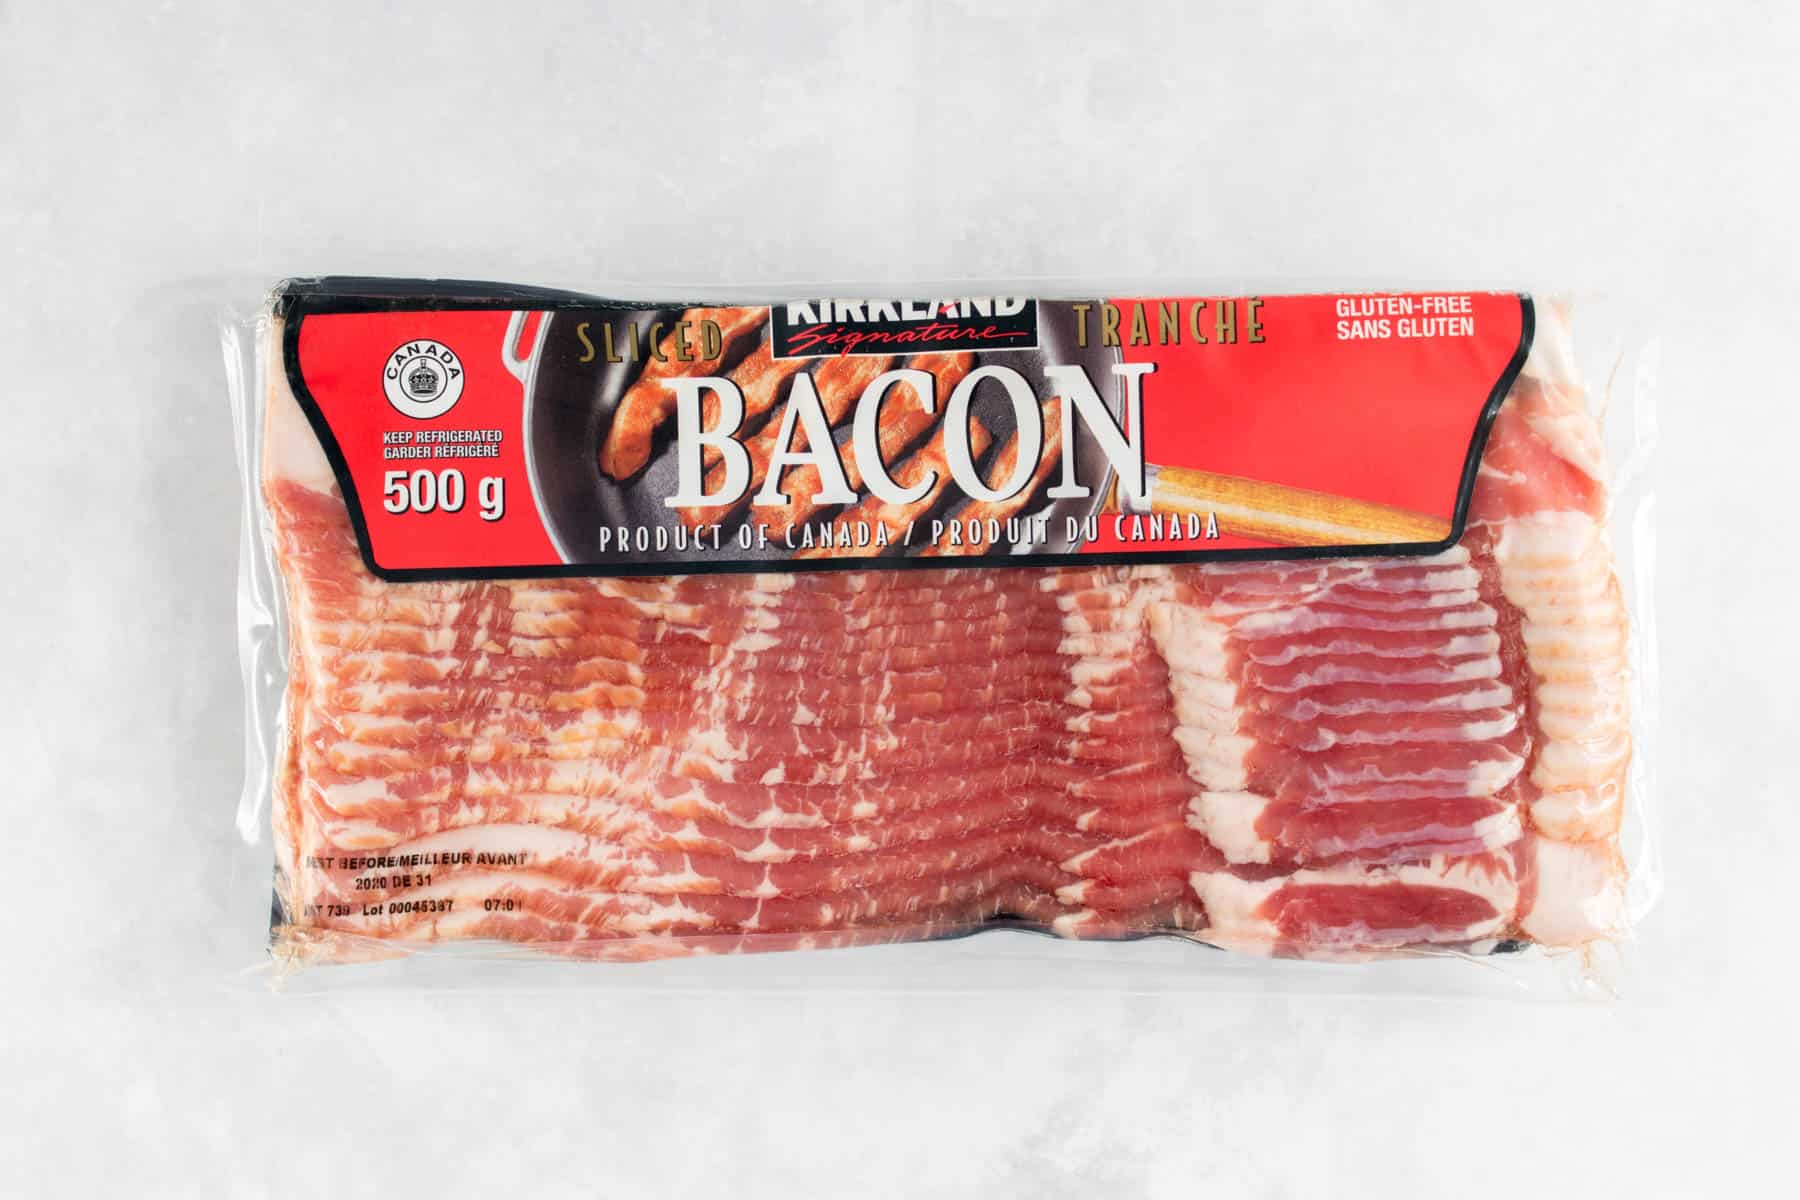 A pack of Kirkland bacon.